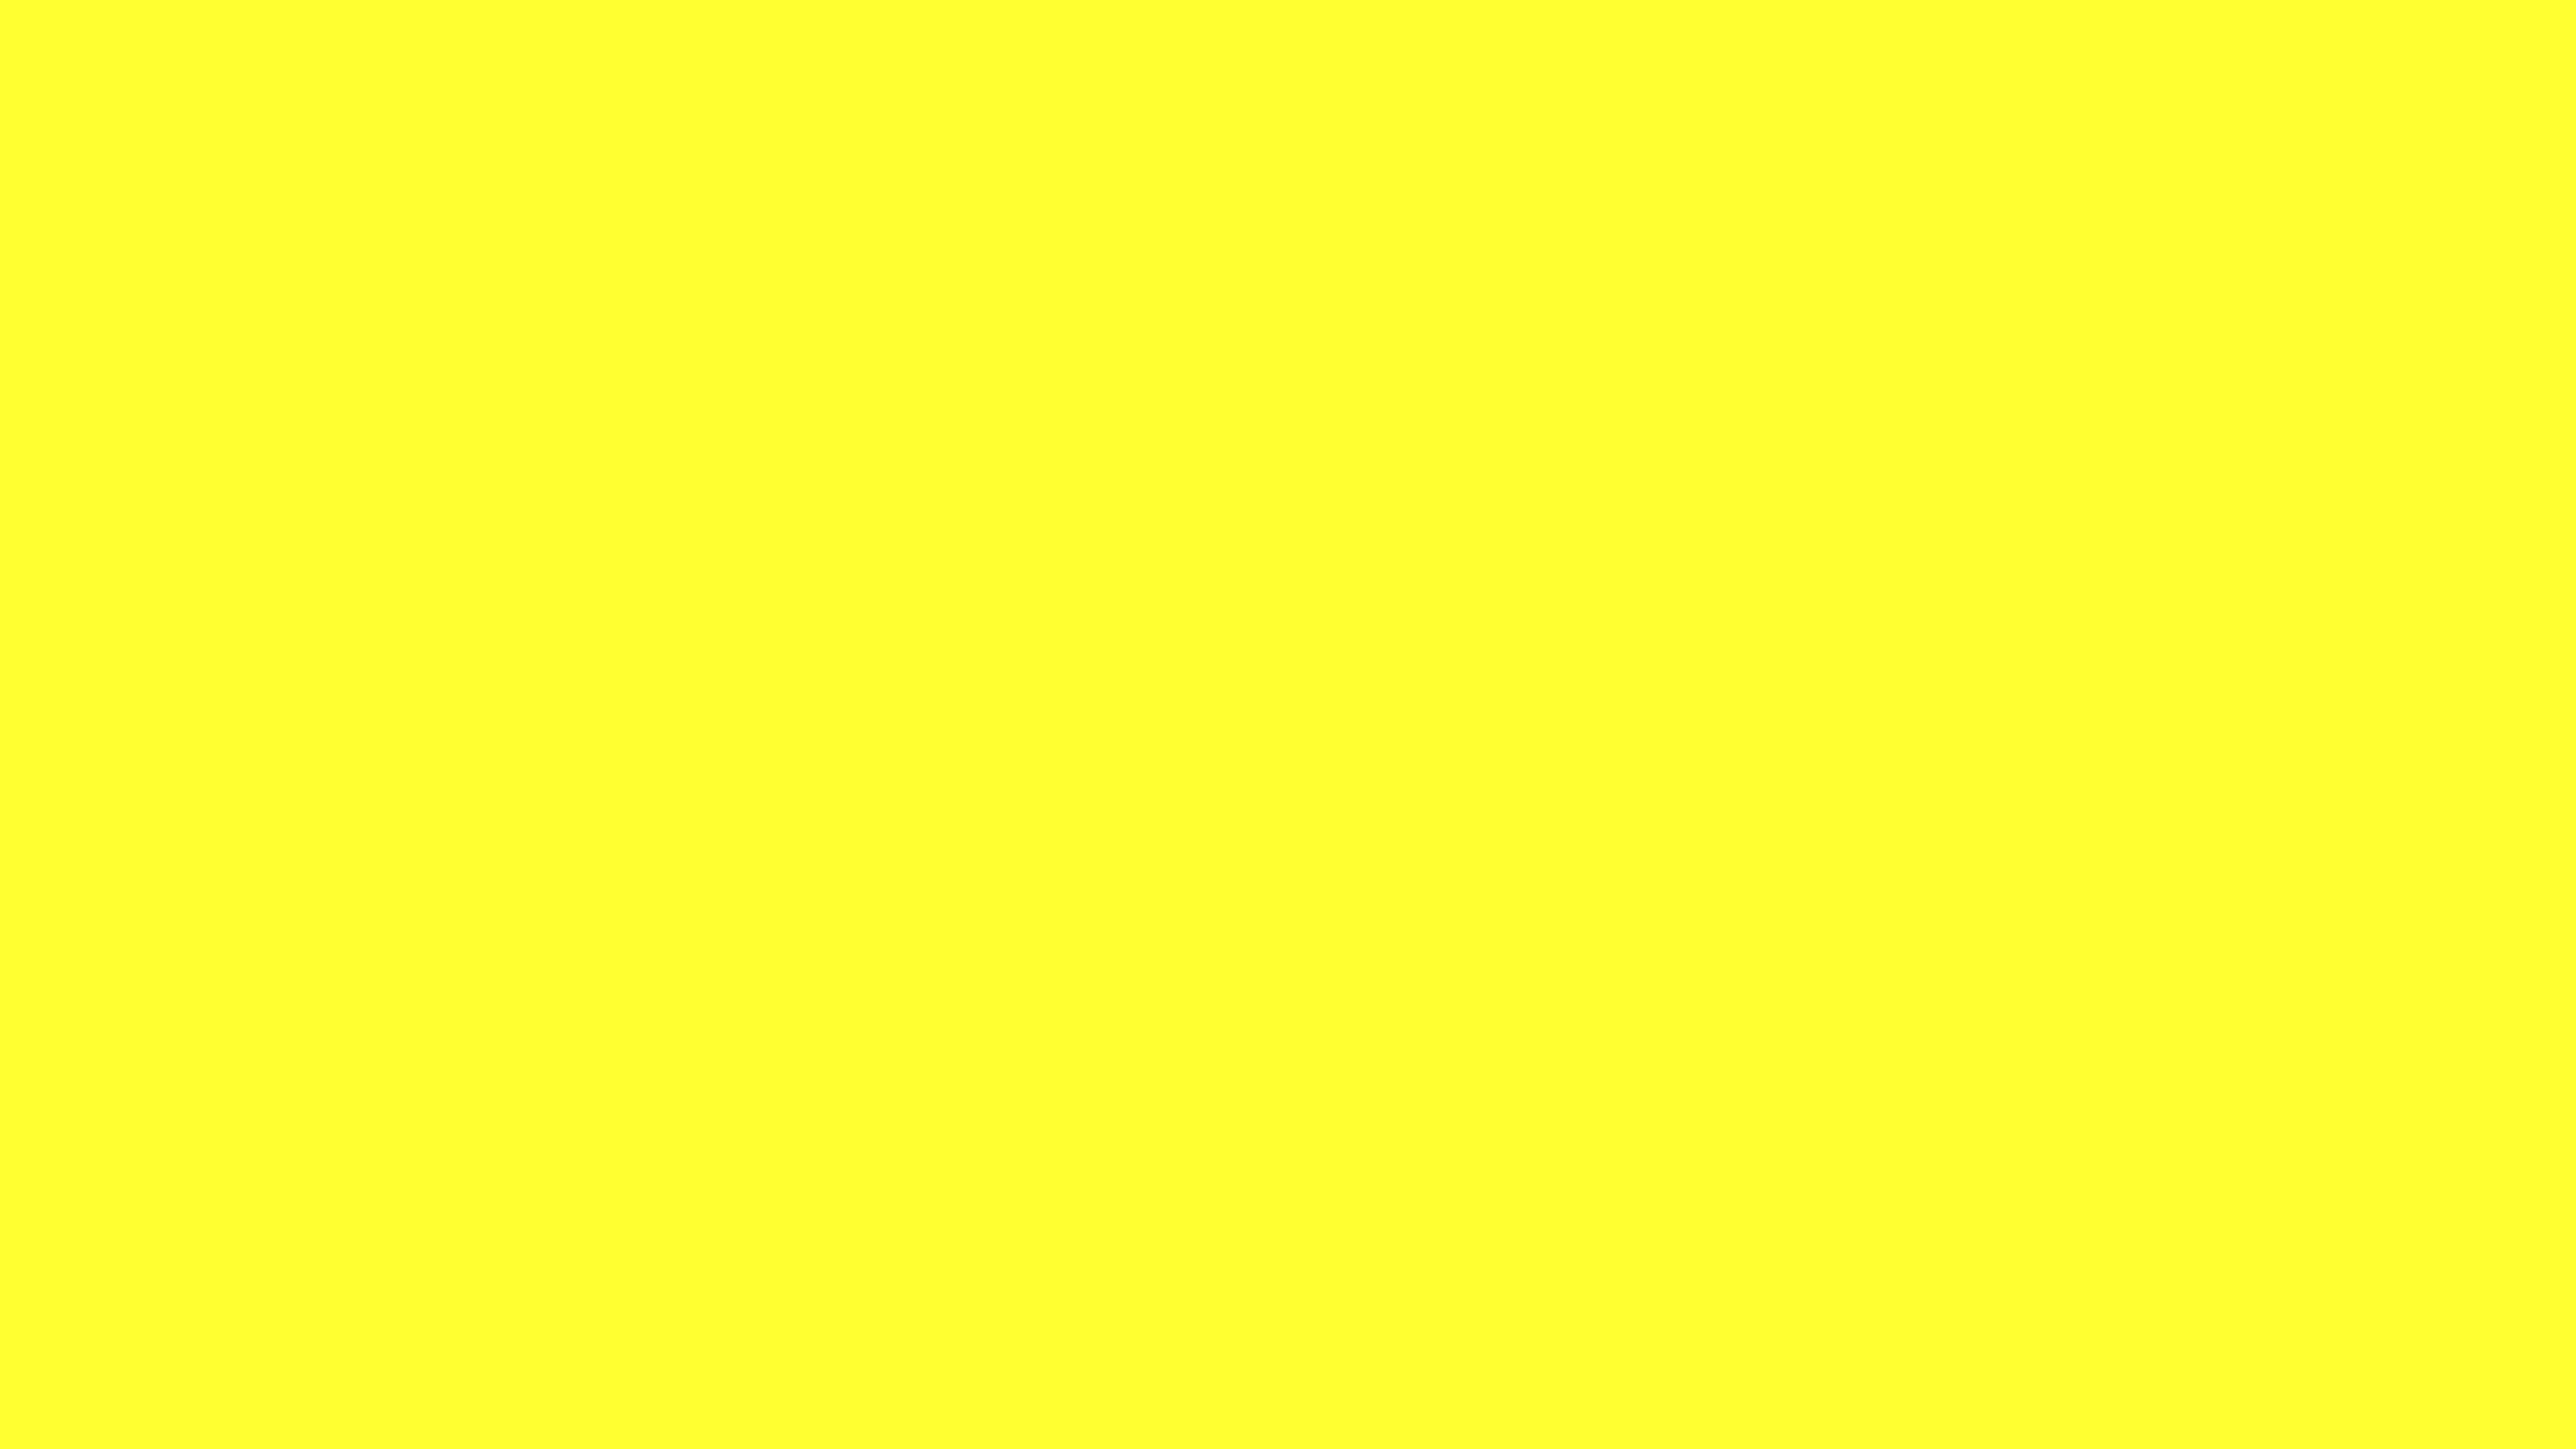 4096x2304 Daffodil Solid Color Background